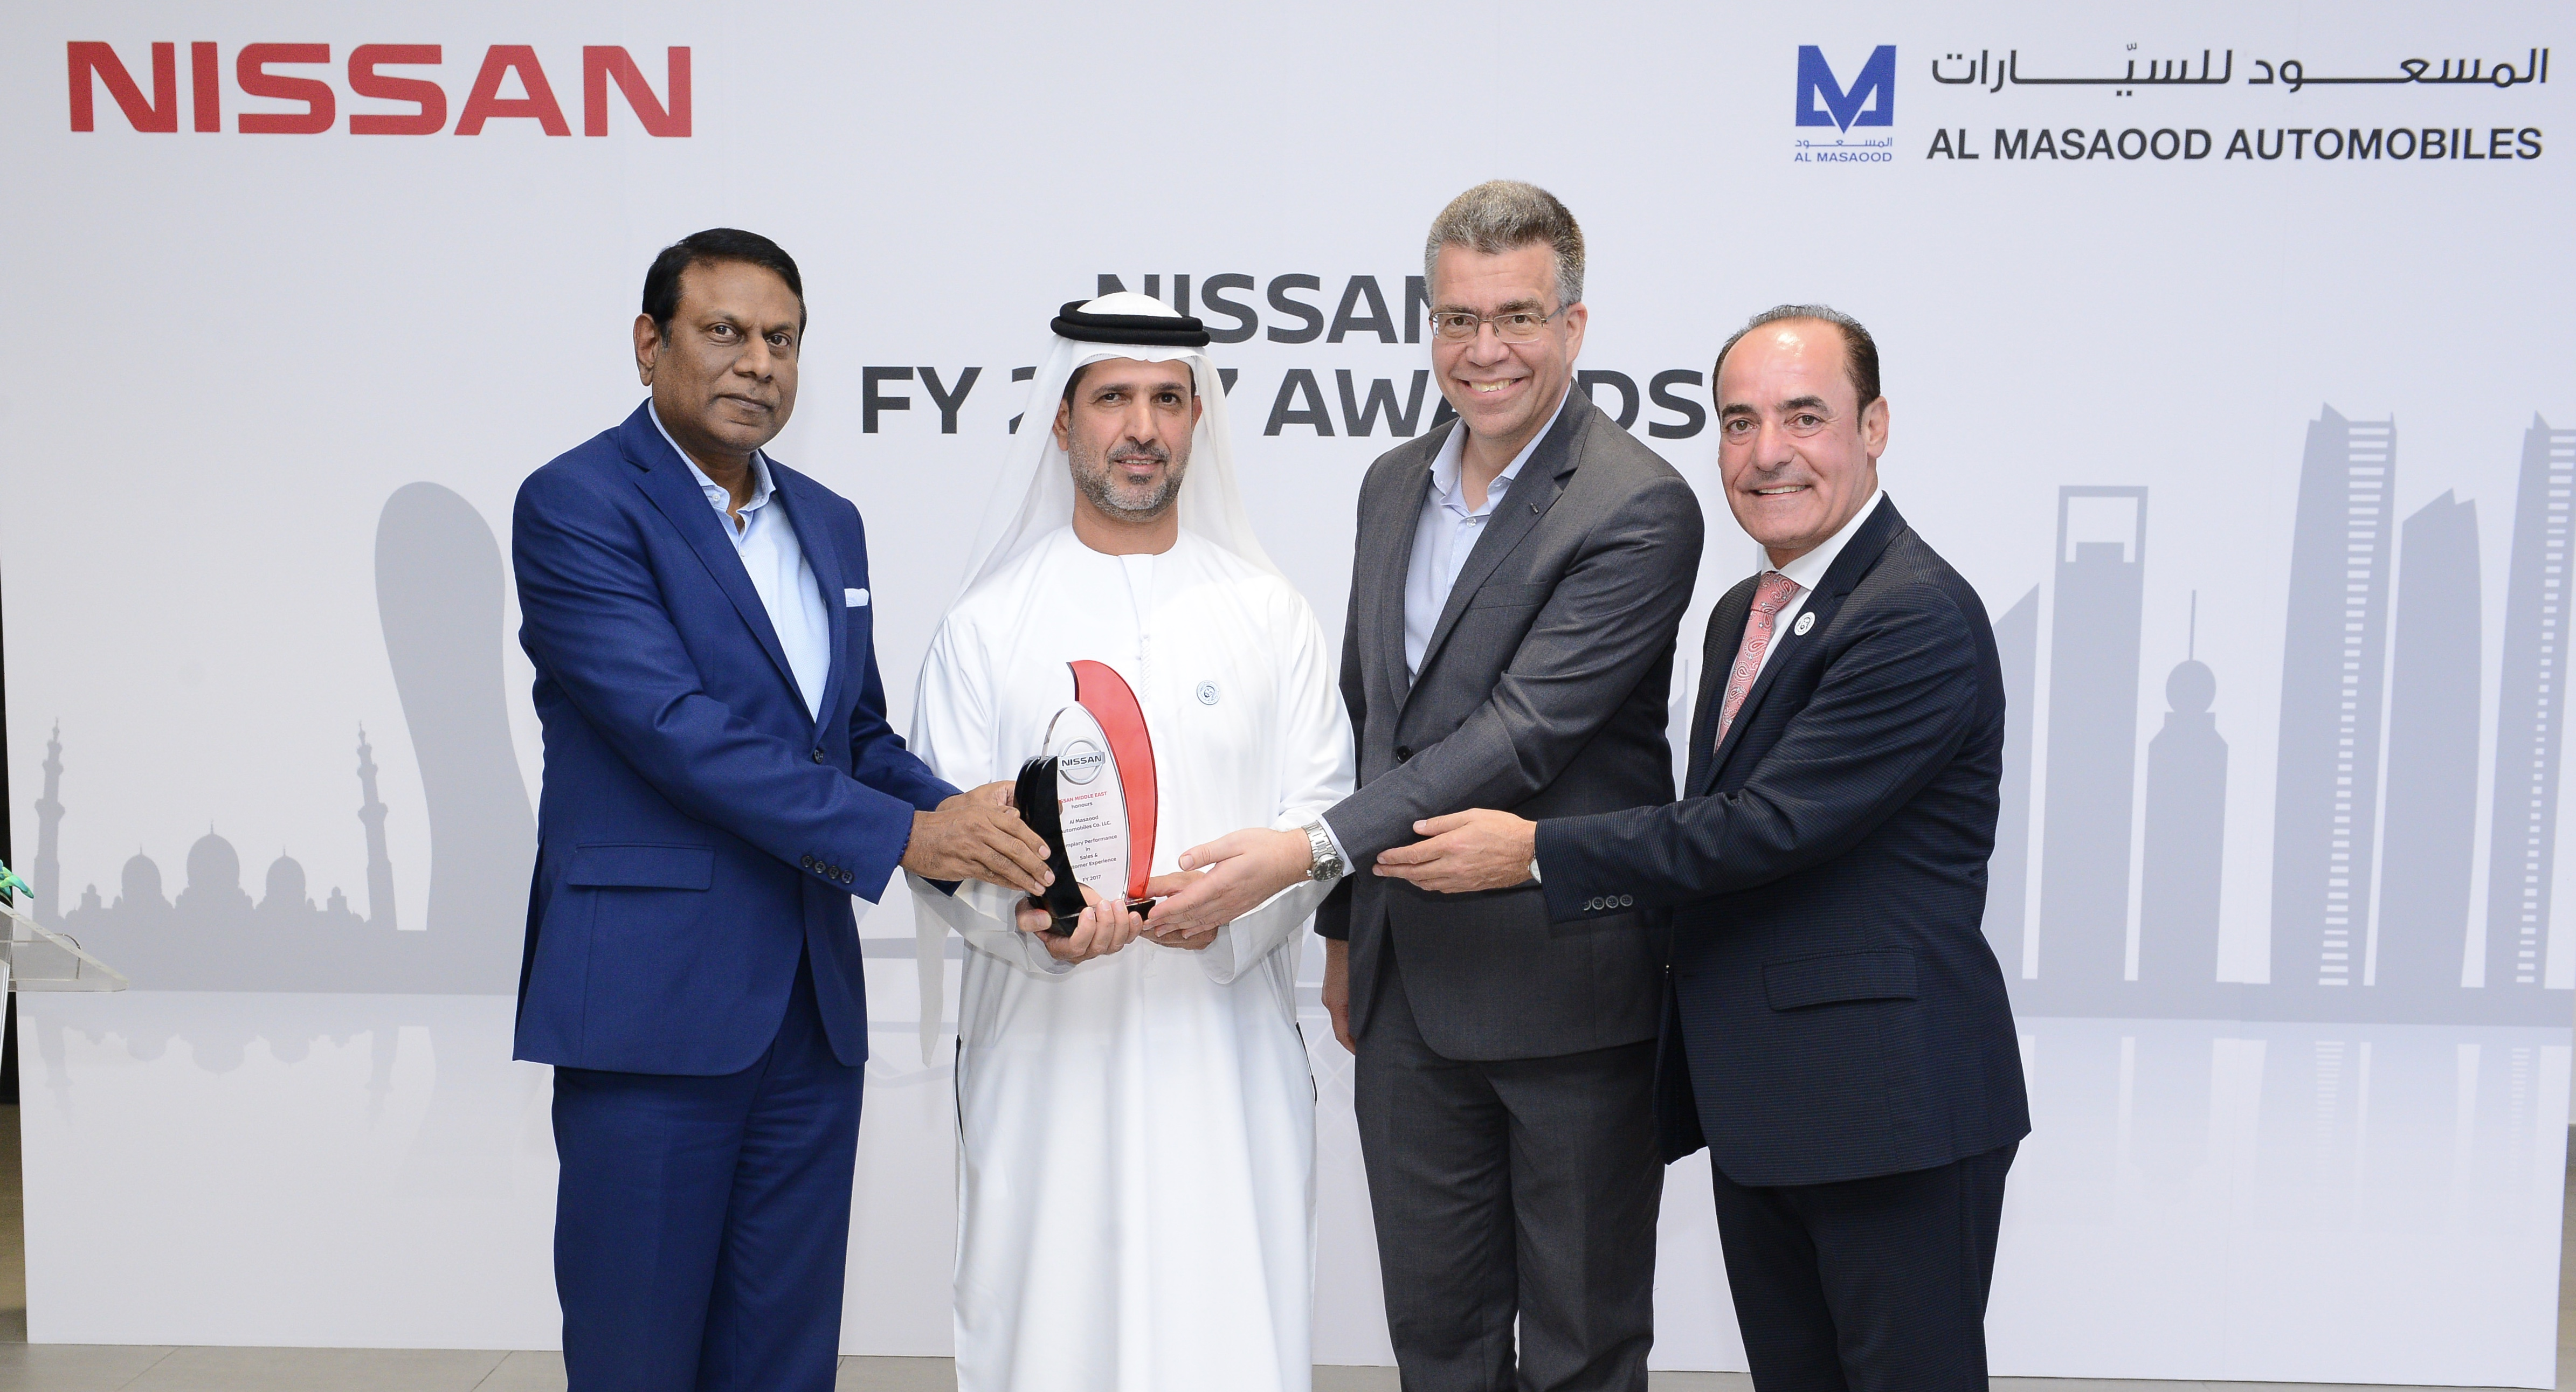 Nissan Awards Al Masaood Automobiles for Outstanding Sales and Customer Service